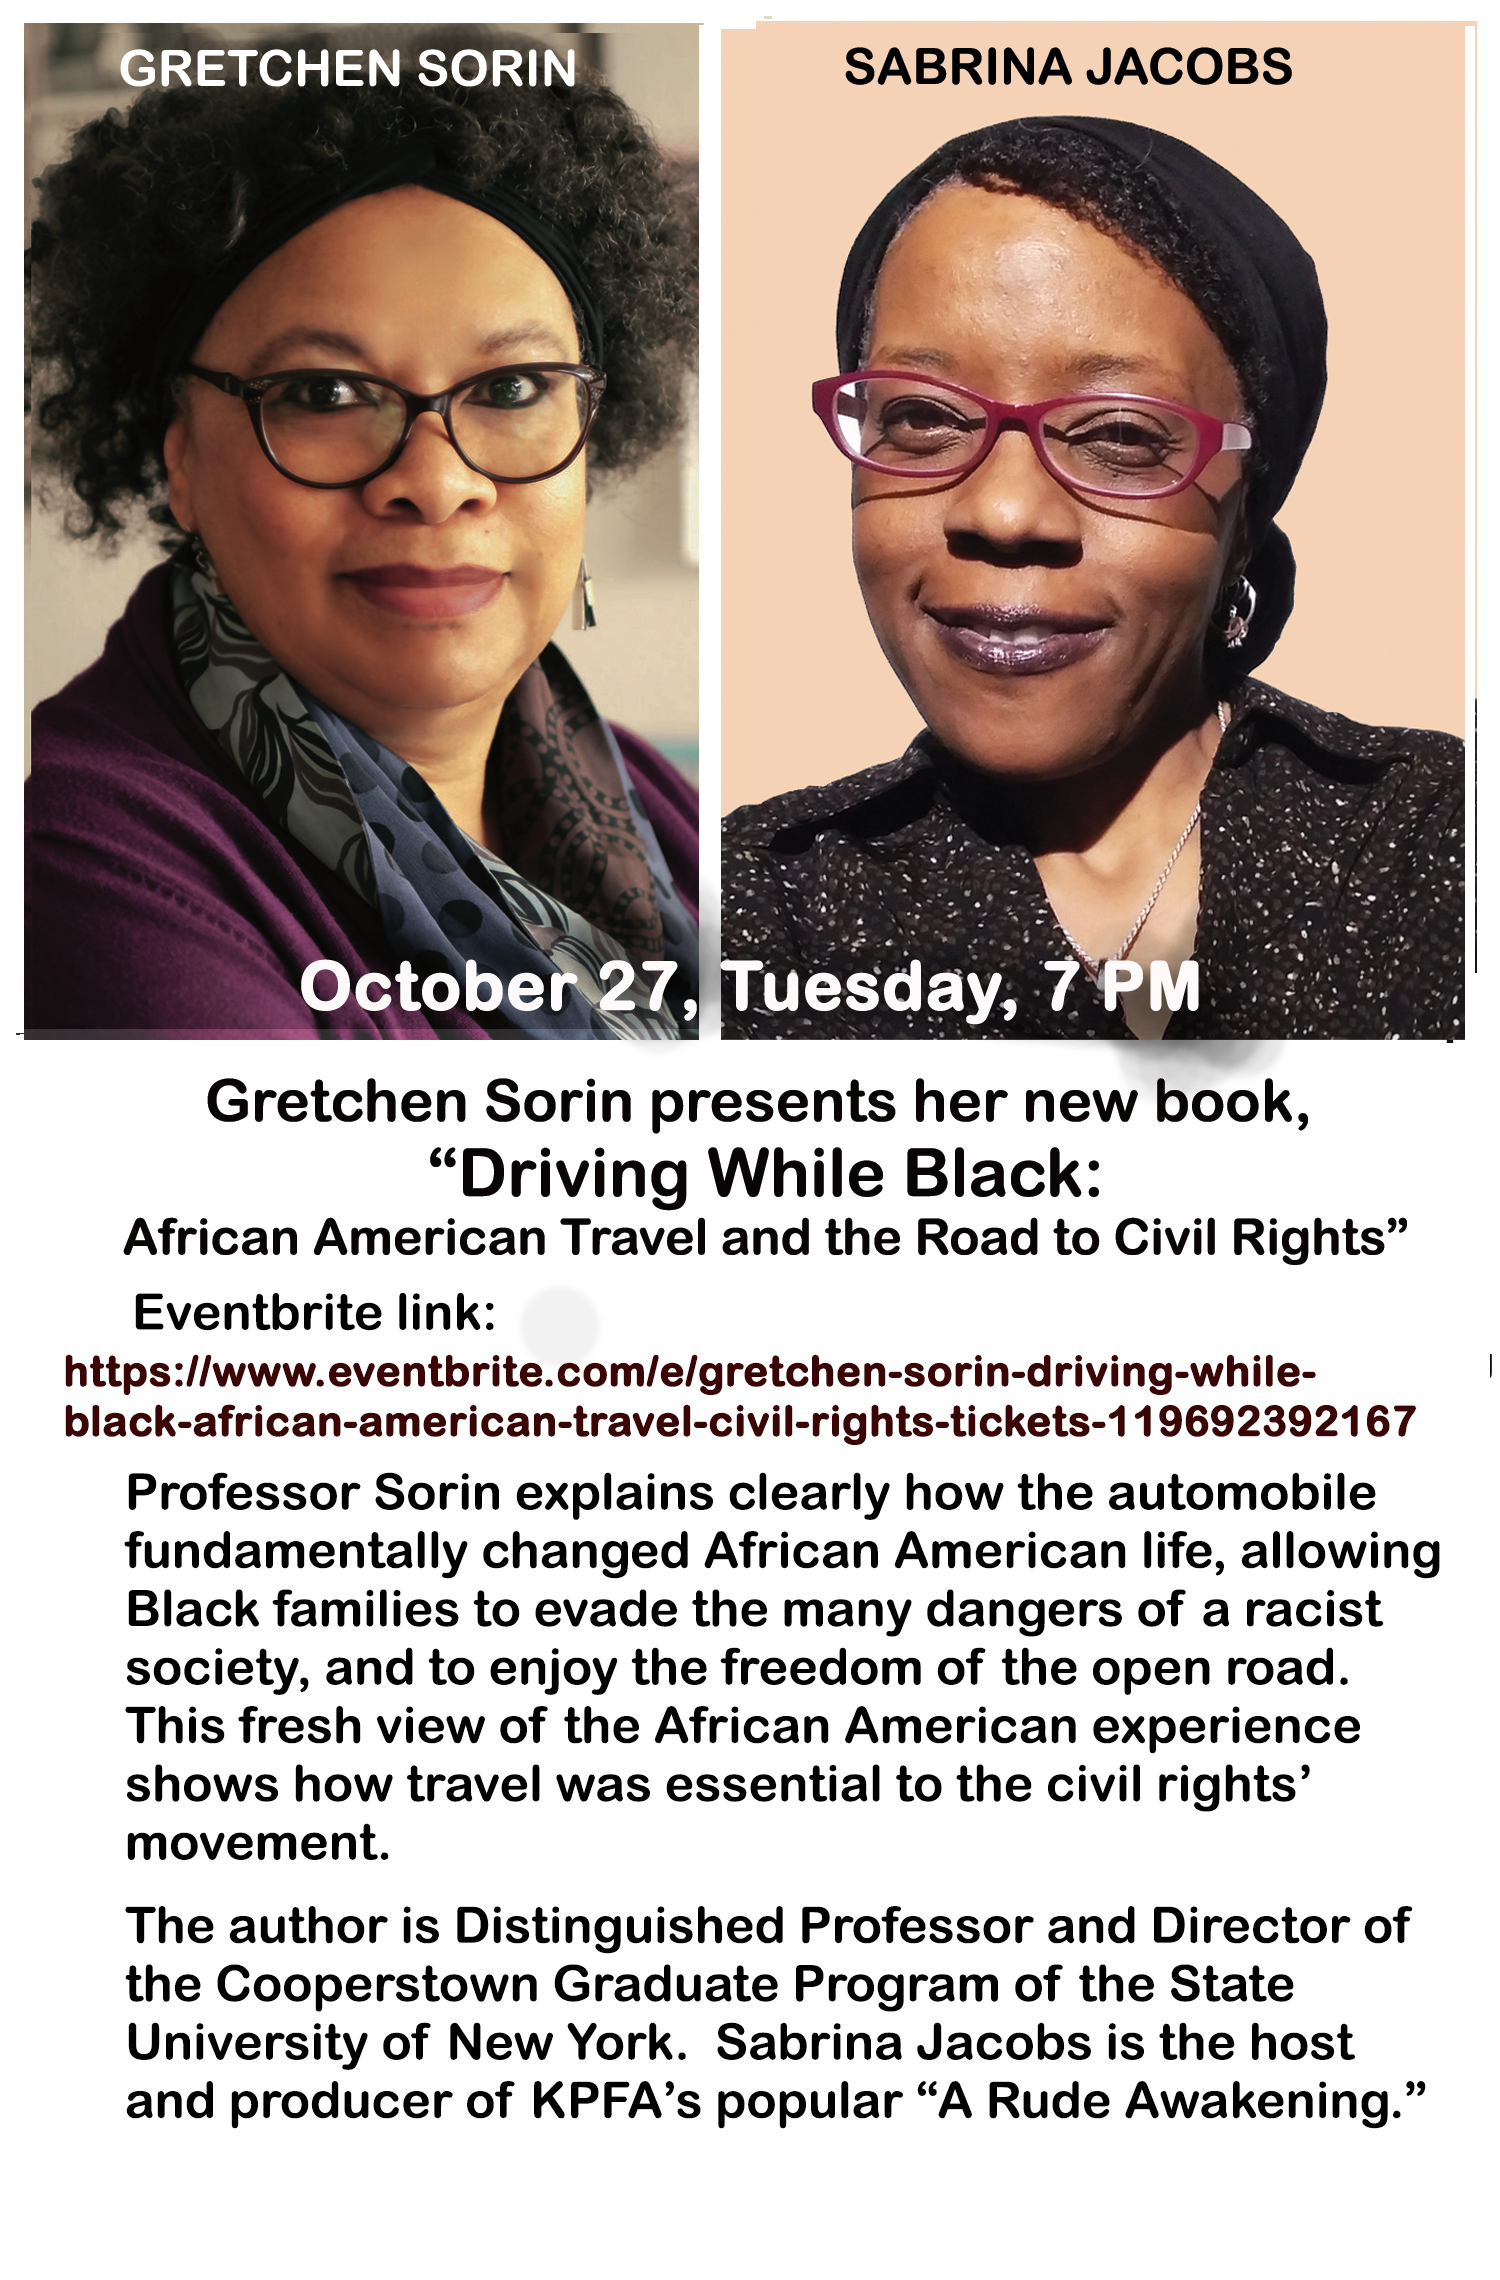 Gretchen Sorin: Driving While Black: African American Travel and the Road to Civil Rights